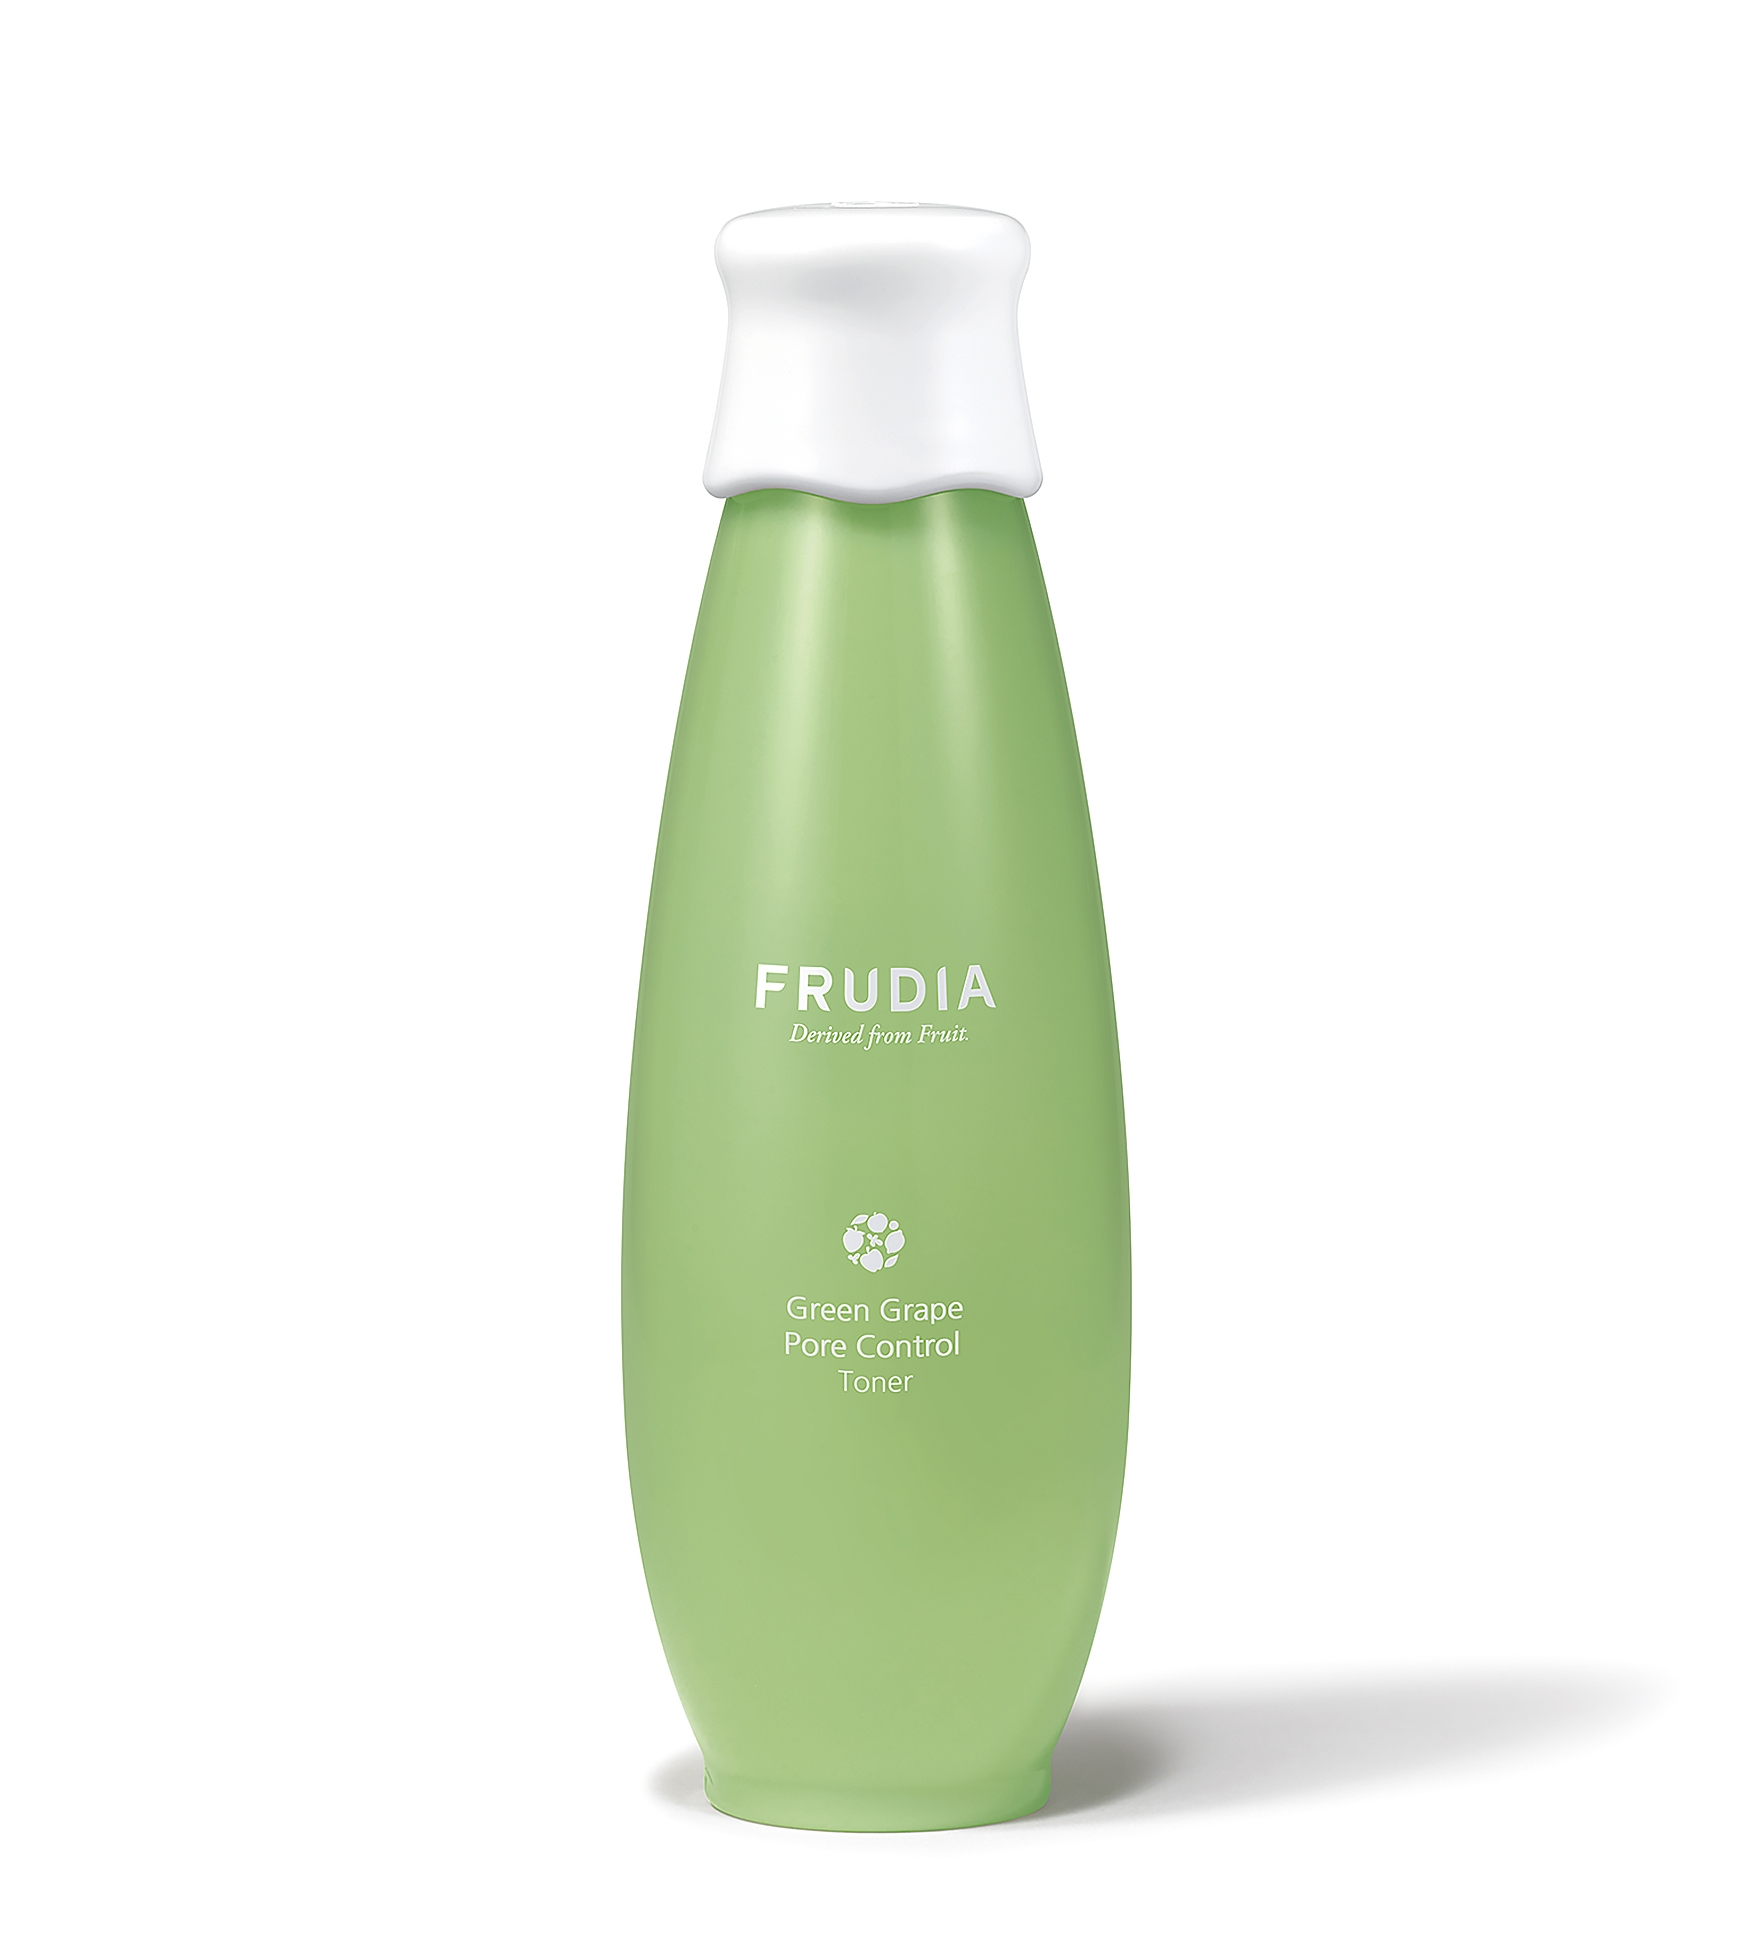 Frudia Green Grape Pore Control Toner